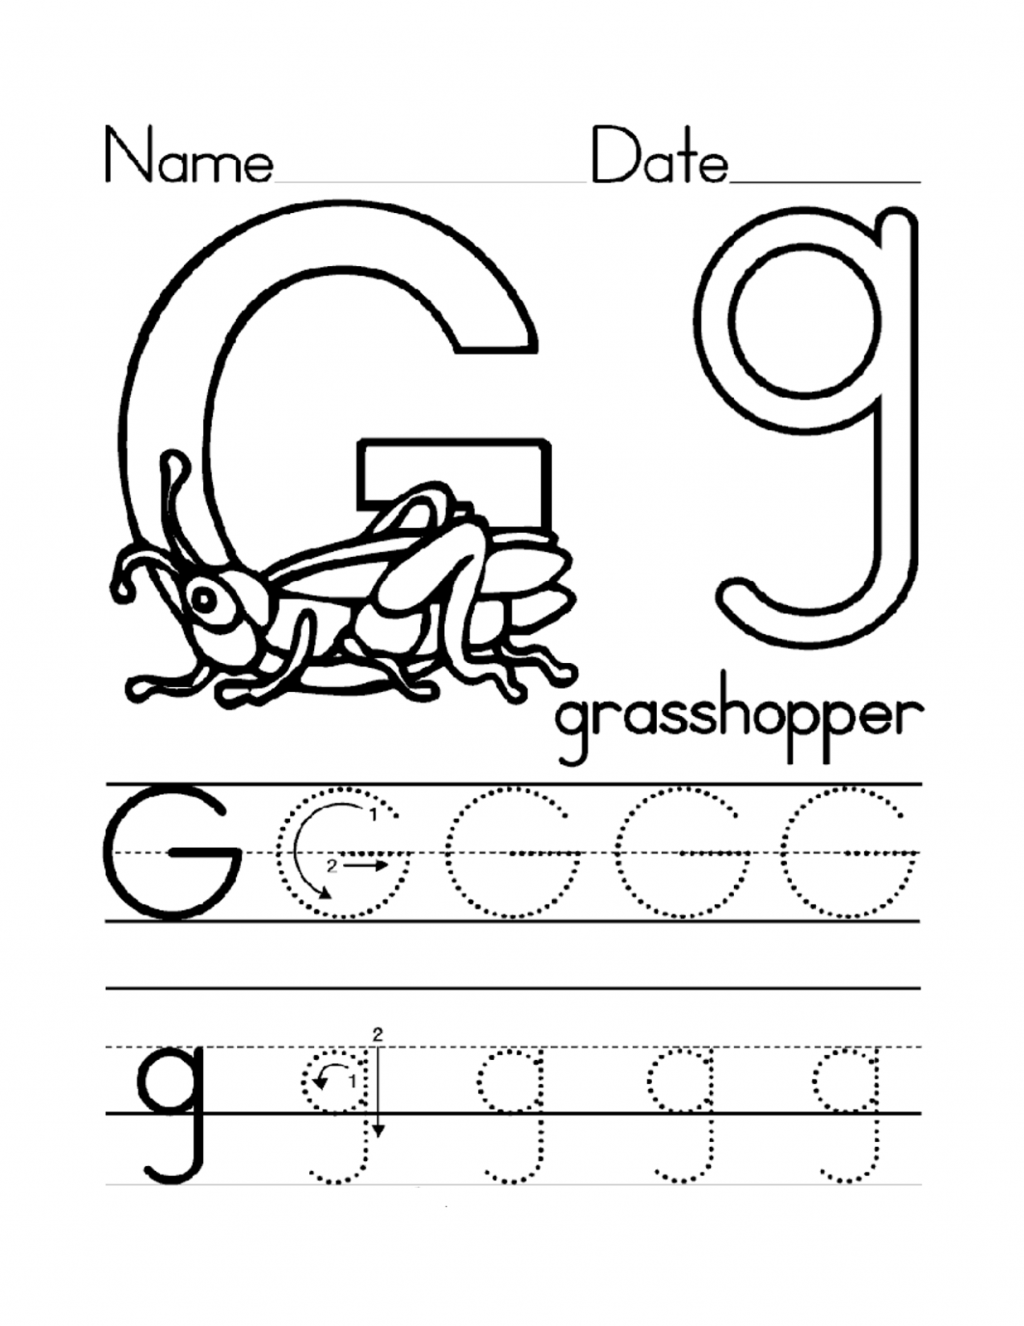 Kidzone Letter Worksheets Trace G Activity Shelter S W Alphabet Worksheets Preschool Letter G Worksheets Letter G Activities